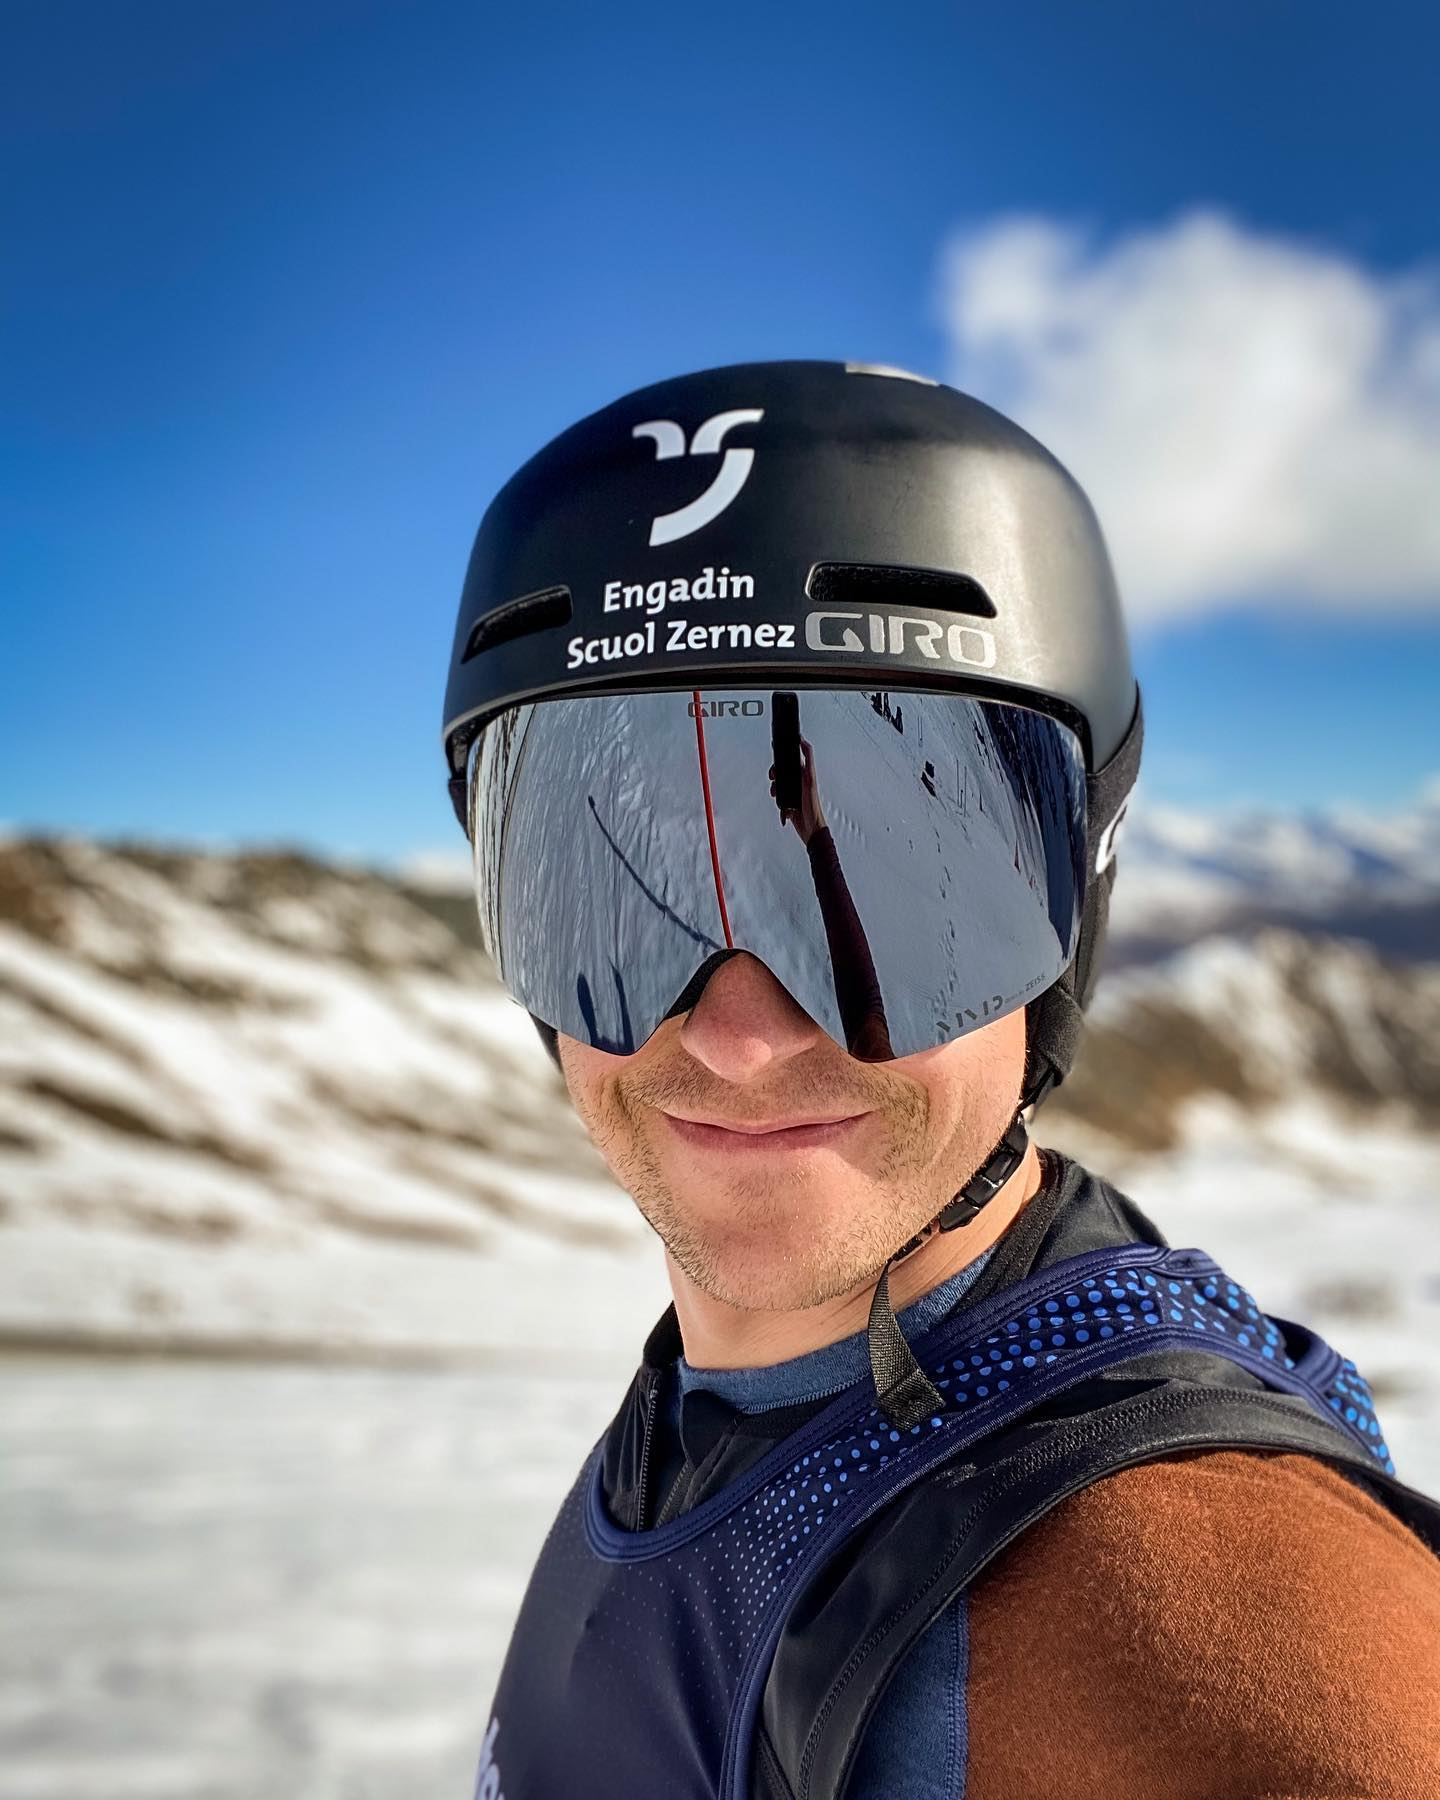 The new @girosnow Contour goggle in black with the jet black Vivid lens  . . . @chrissports.ch